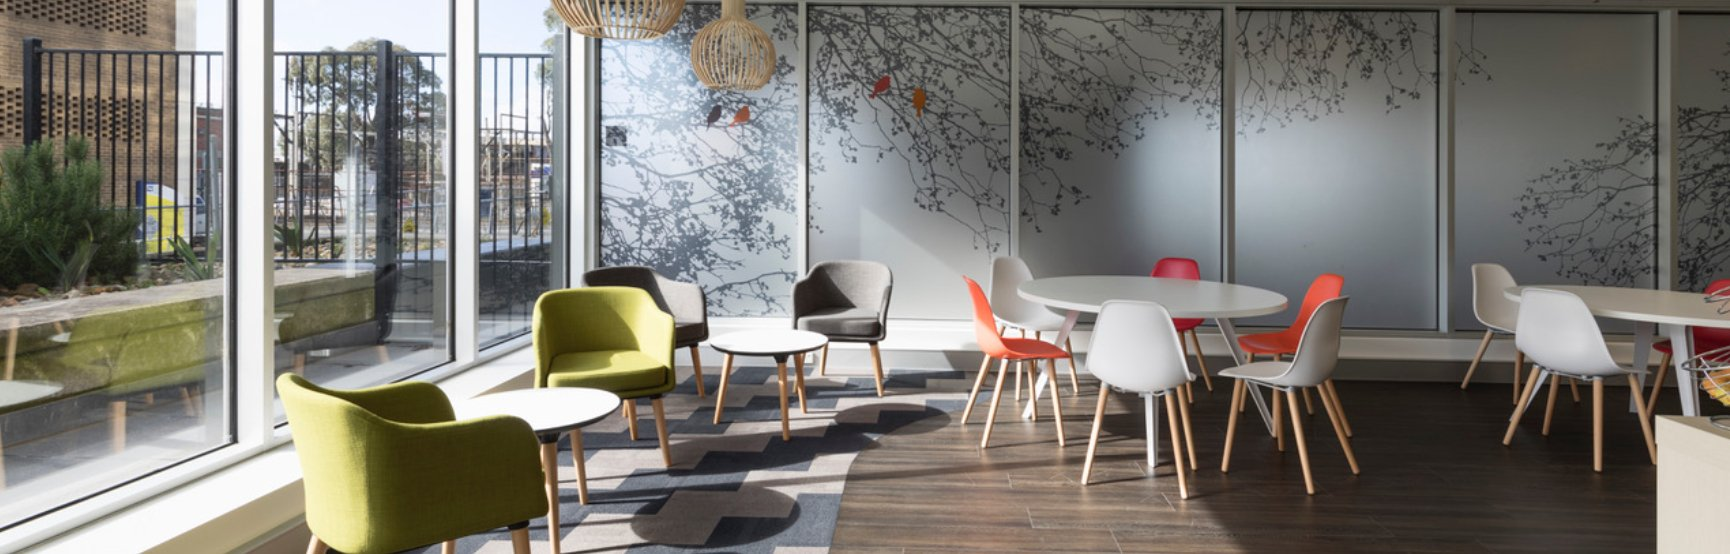 6 Tips to Find the Best Commercial Fitouts